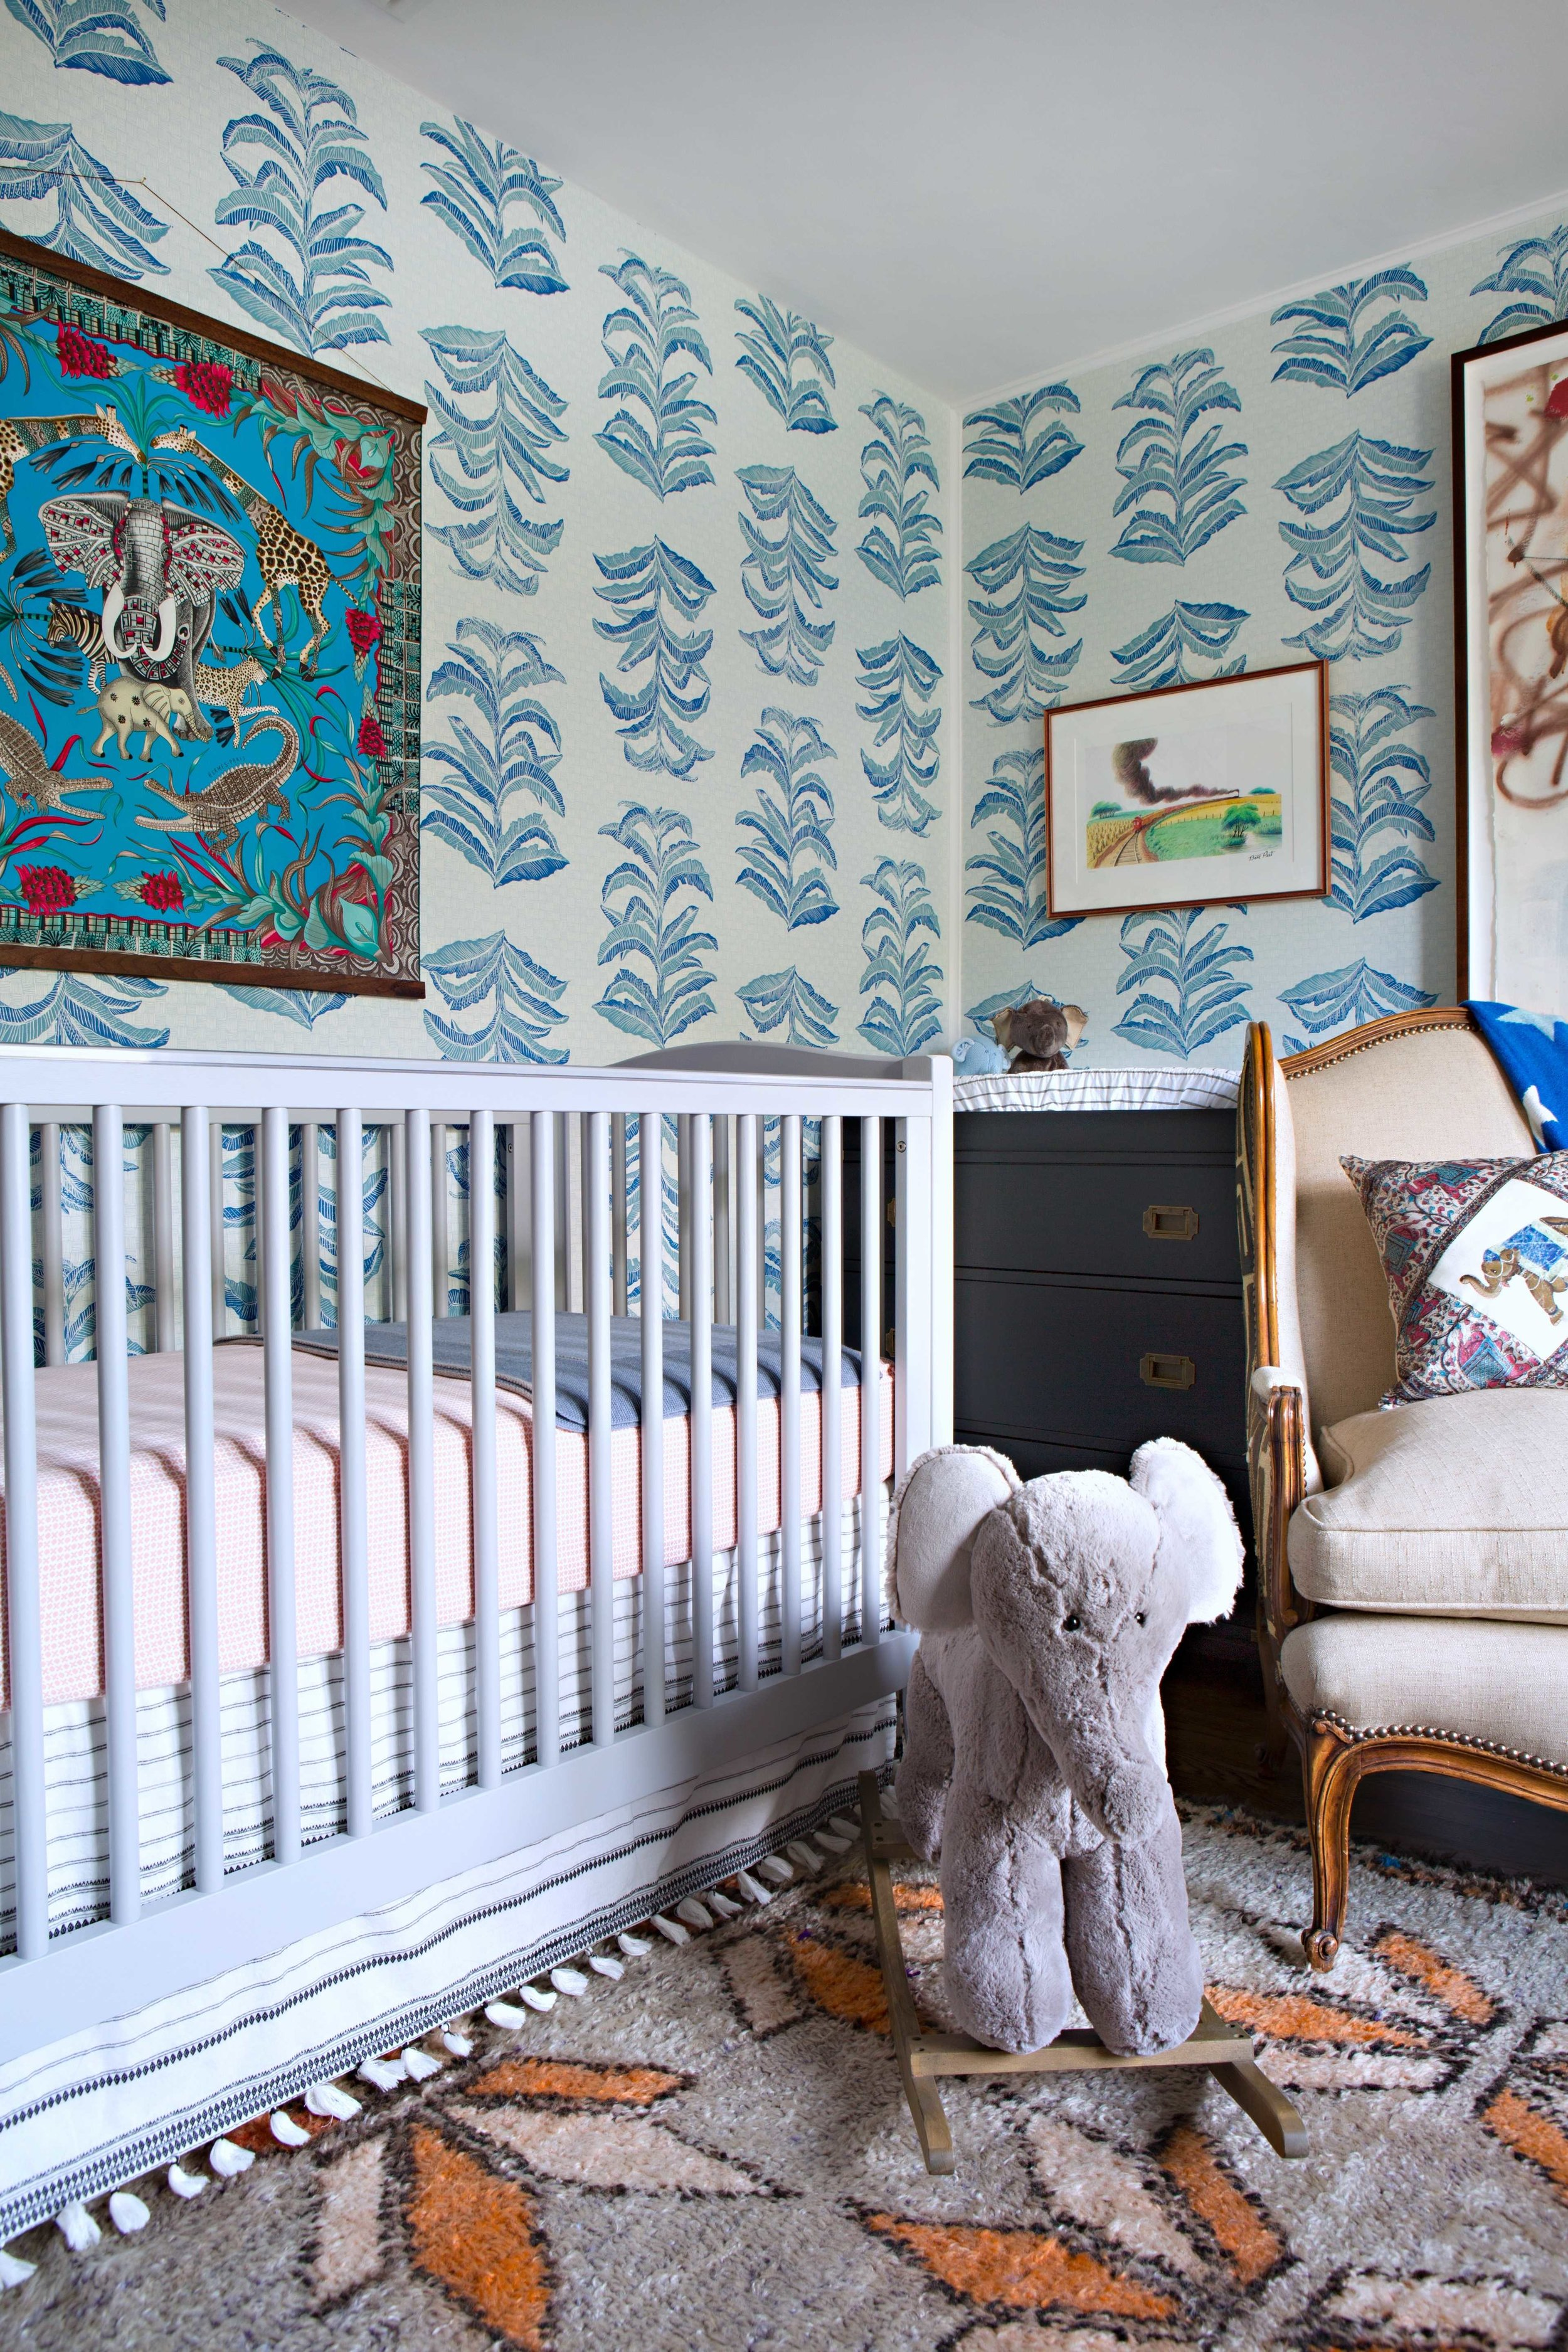 Banana Leaf Wallpaper in Sapphire, Interiors by Sharon Lee, Photo by Karyn Millet